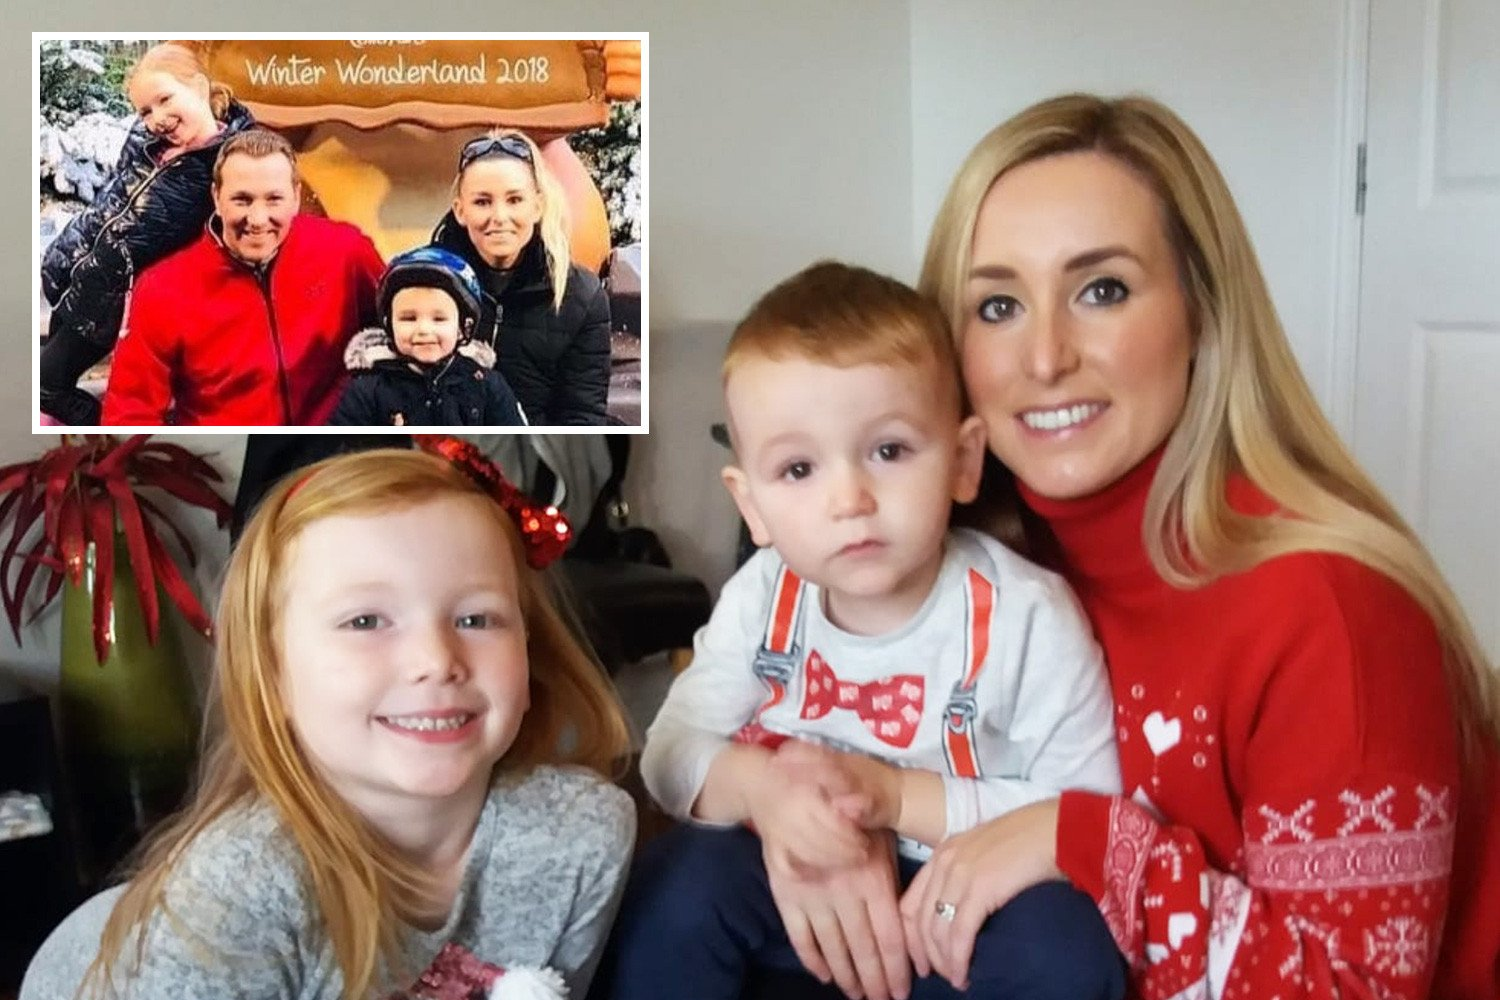 Mum-of-two with aggressive breast cancer dies at just 35 with family by her side